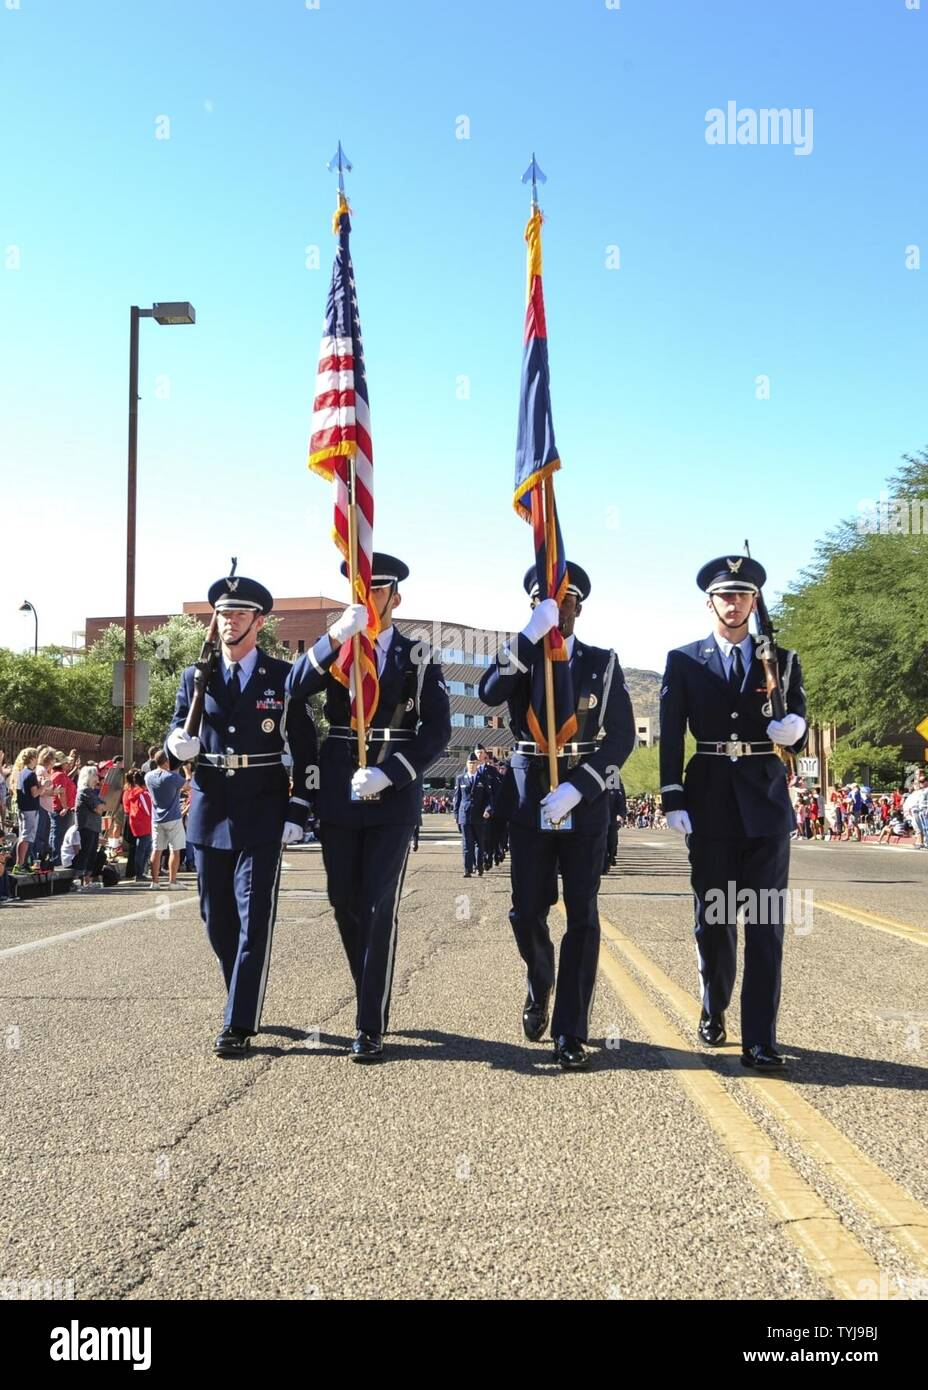 Veterans Day Parade And Ceremonies Stock Photos & Veterans Day